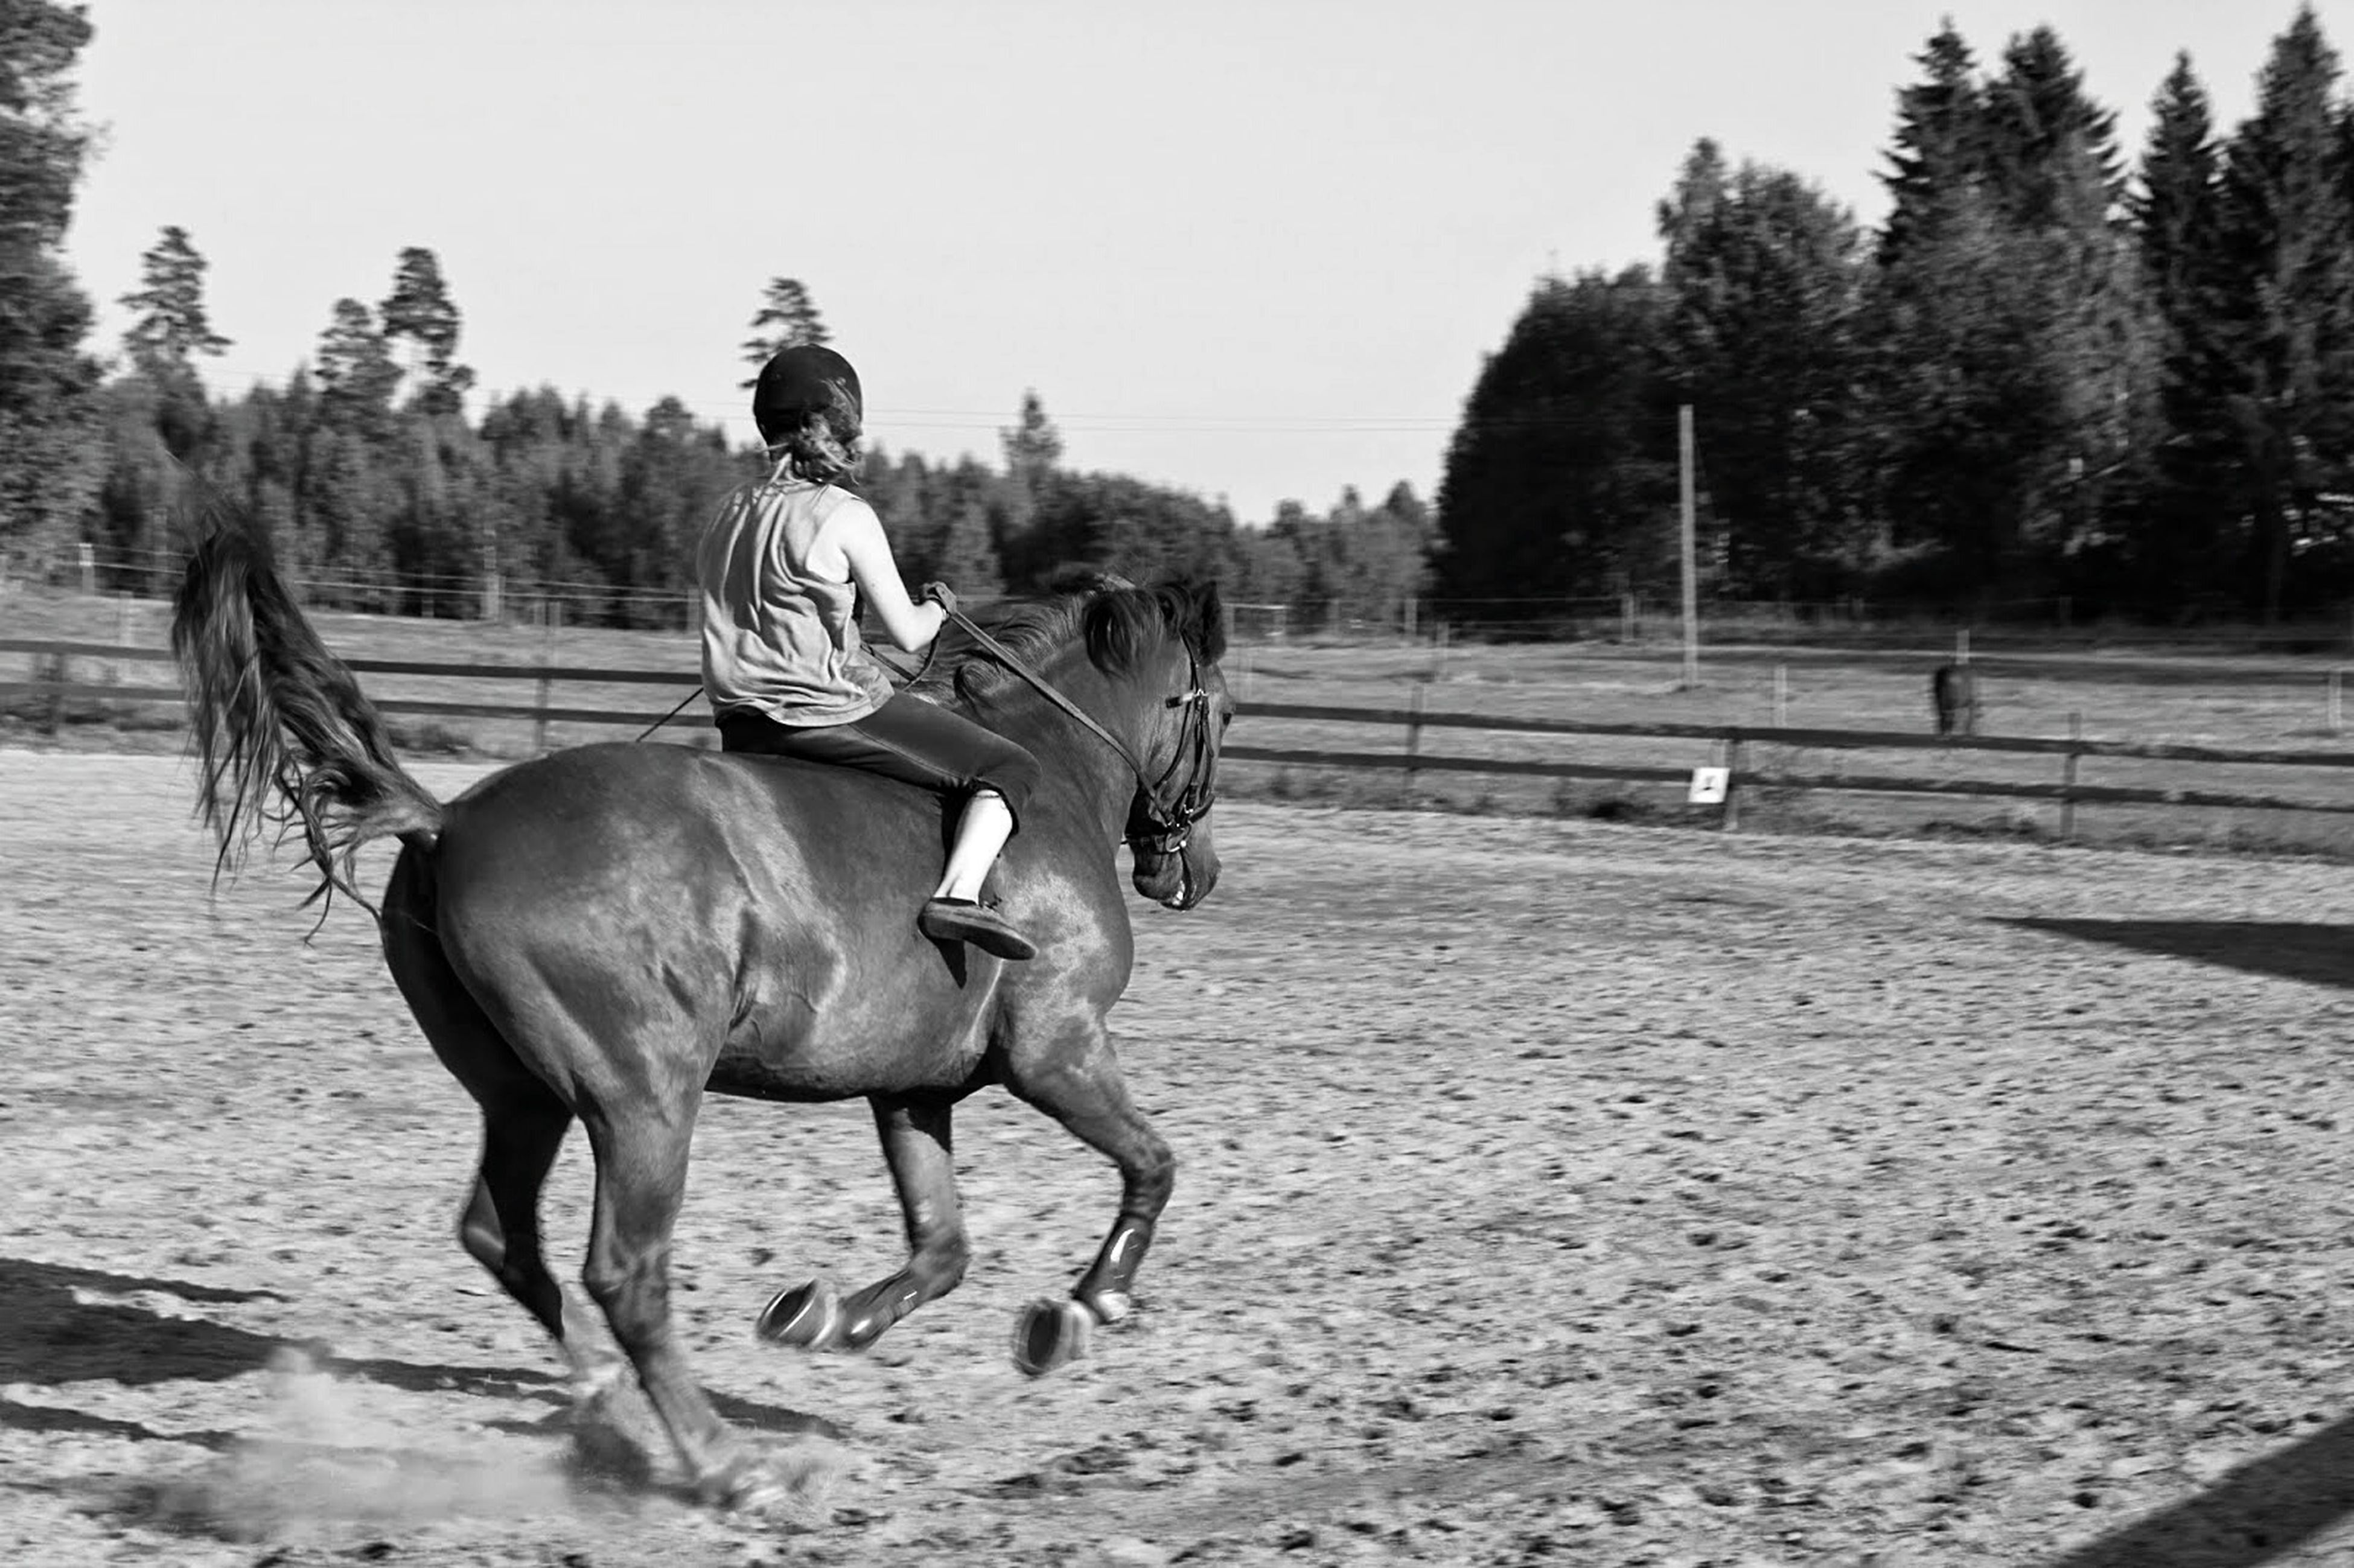 animal themes, horse, domestic animals, mammal, working animal, tree, one animal, full length, livestock, transportation, riding, two animals, herbivorous, standing, road, clear sky, day, on the move, walking, sunlight